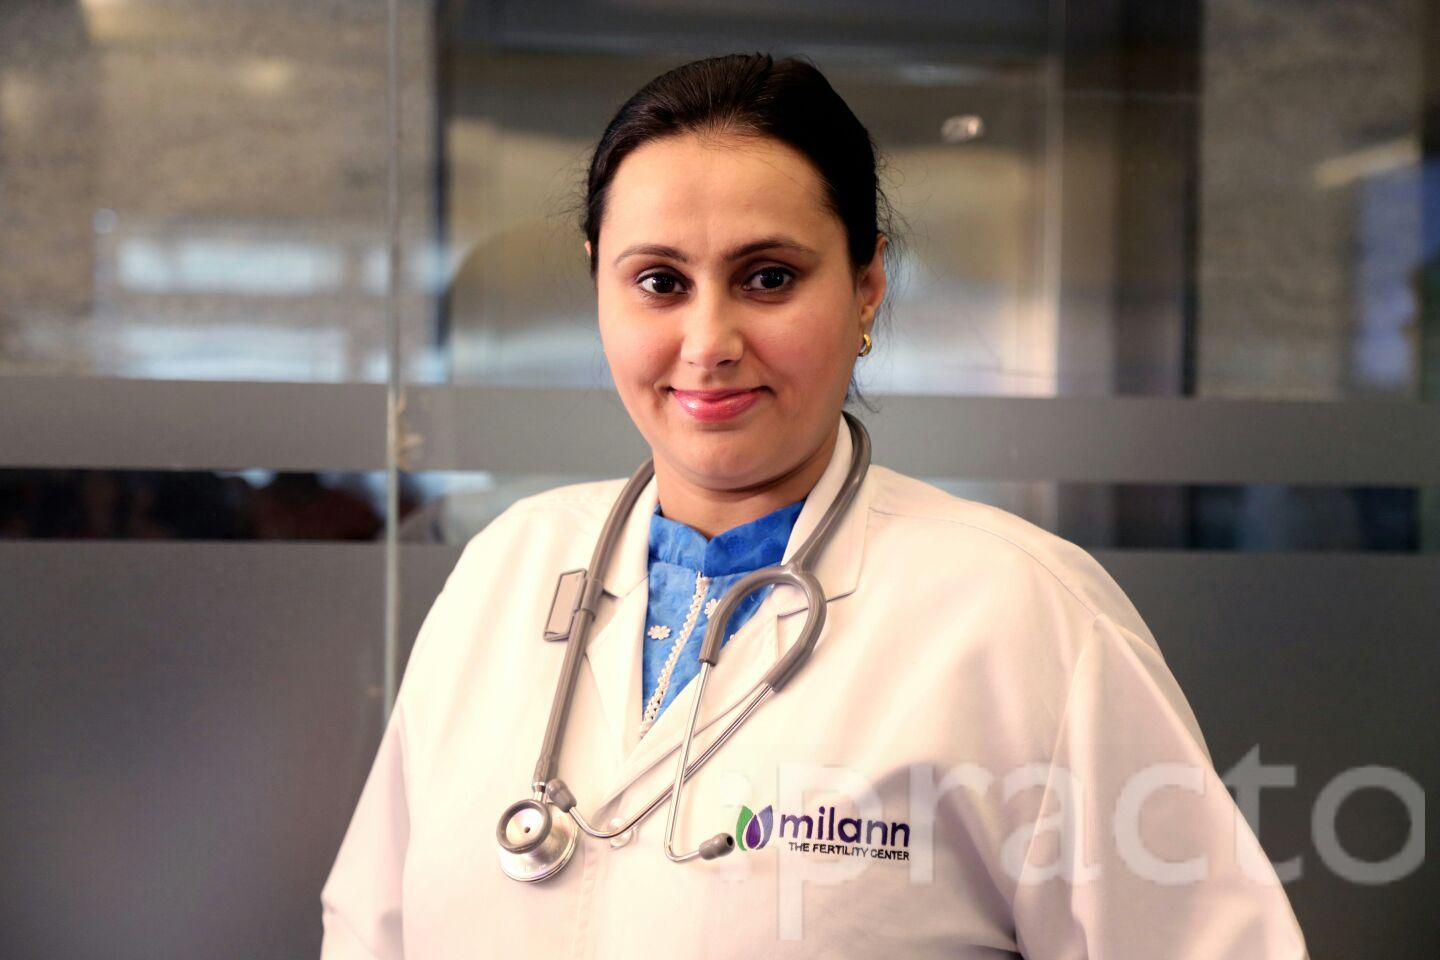 Dr. Arveen Vohra - Gynecologist/Obstetrician